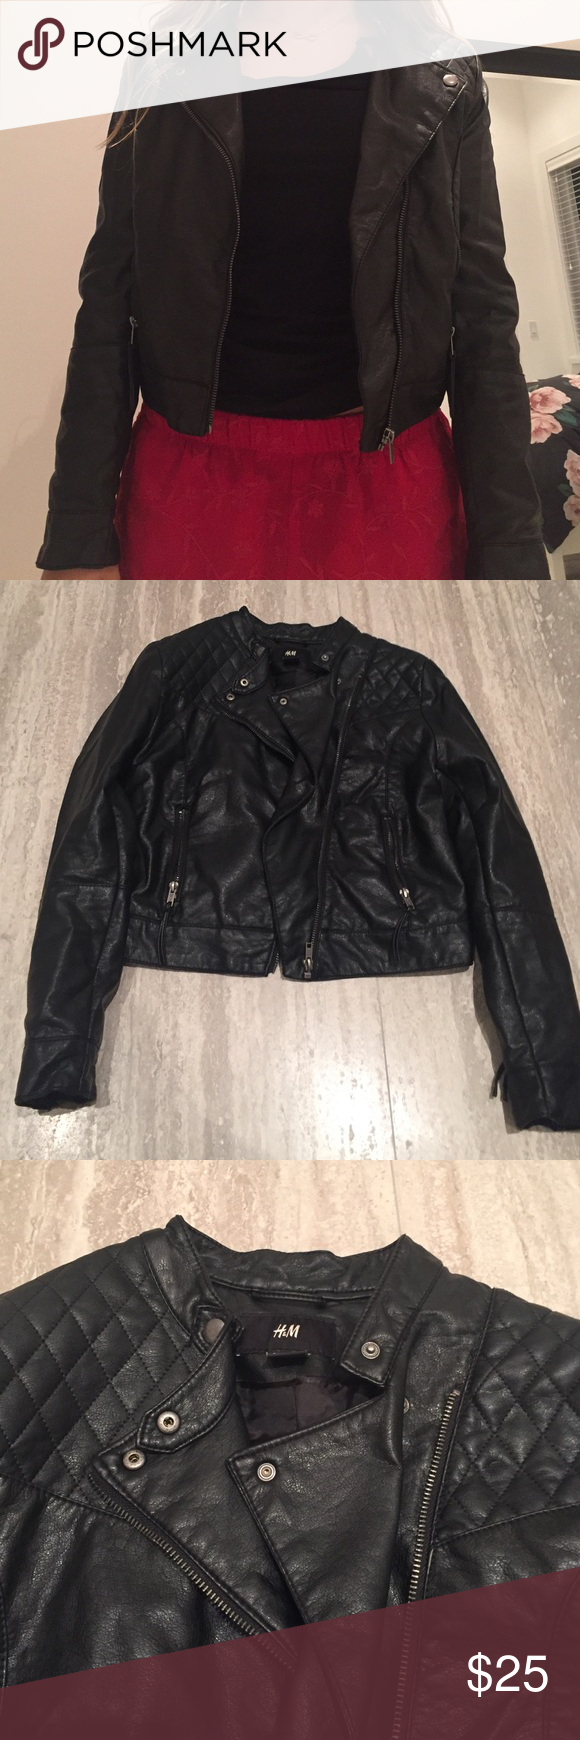 Leather jacket from H&M! Leather jacket, Clothes design